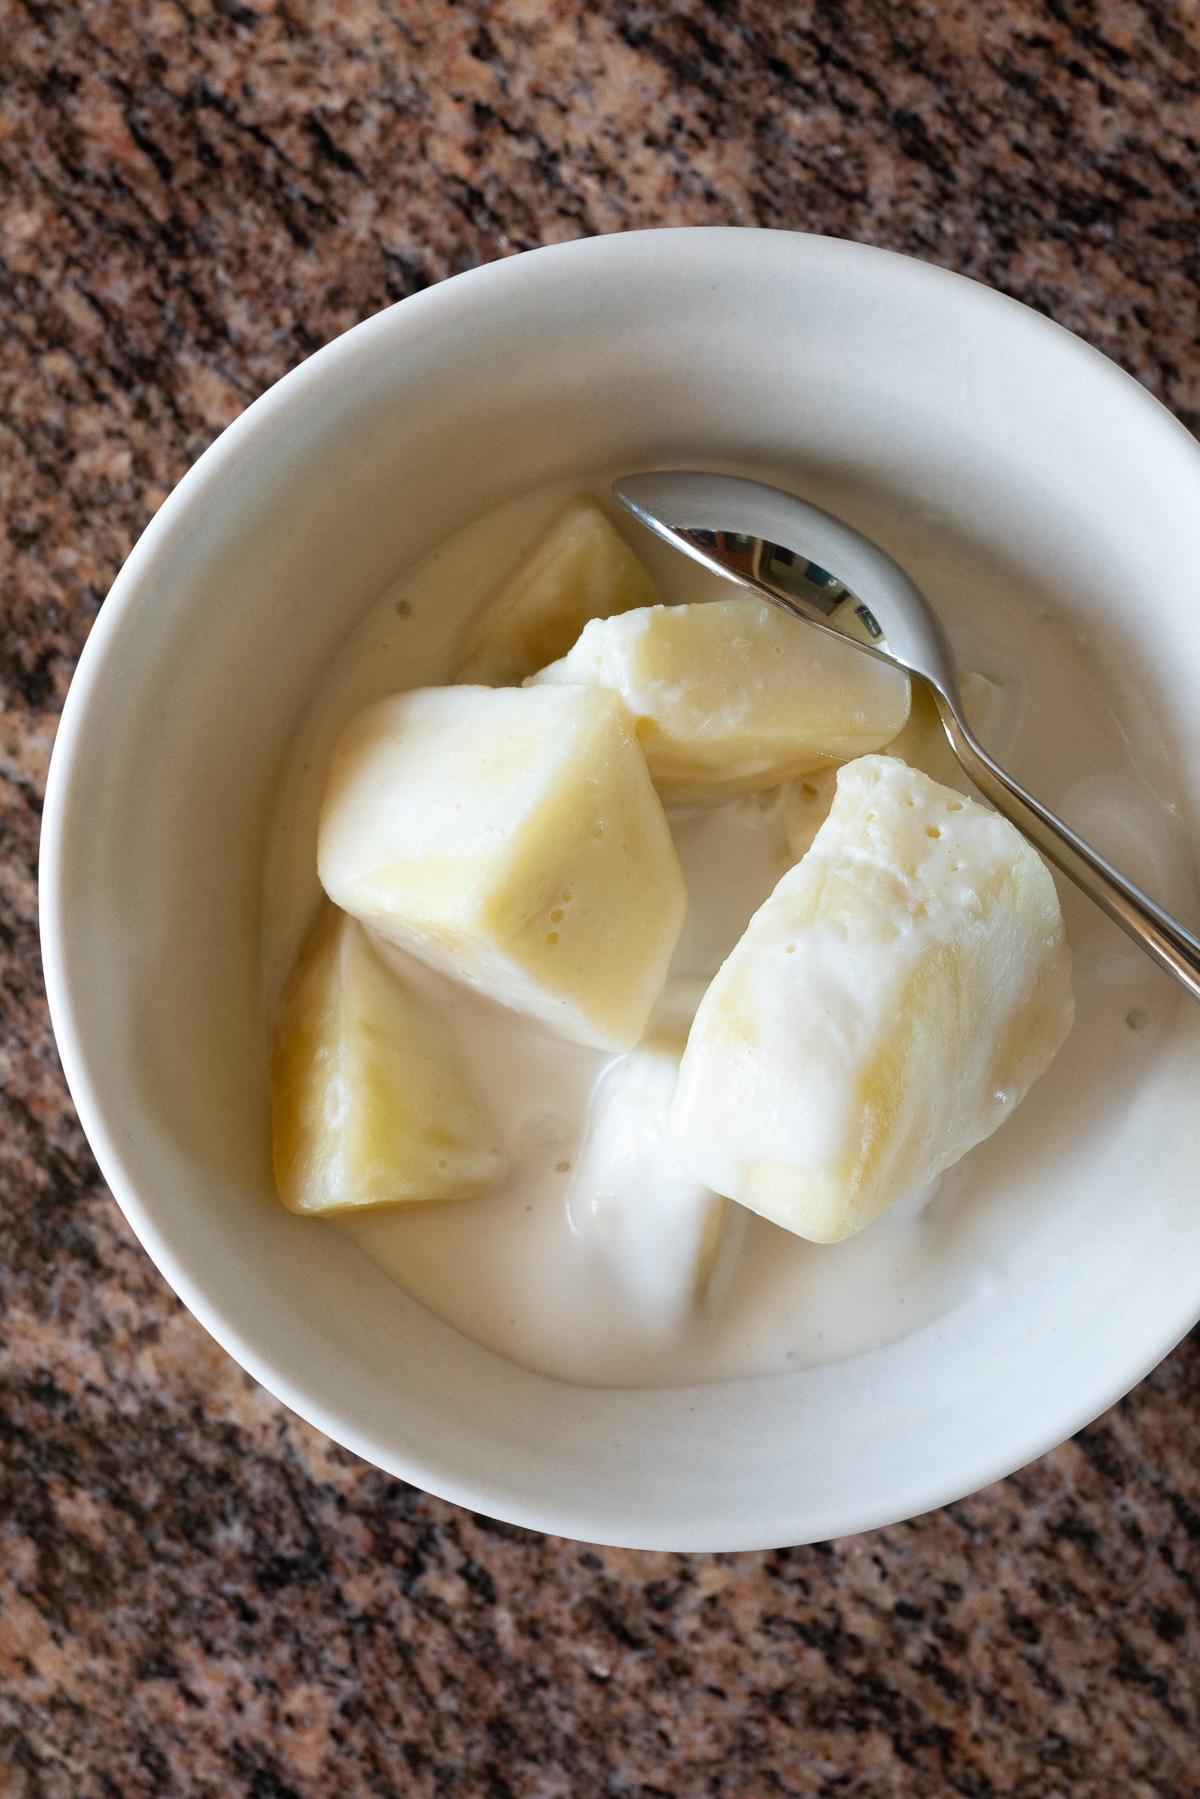 A bowl of Breadfruit (Ulu) with Coconut Milk.